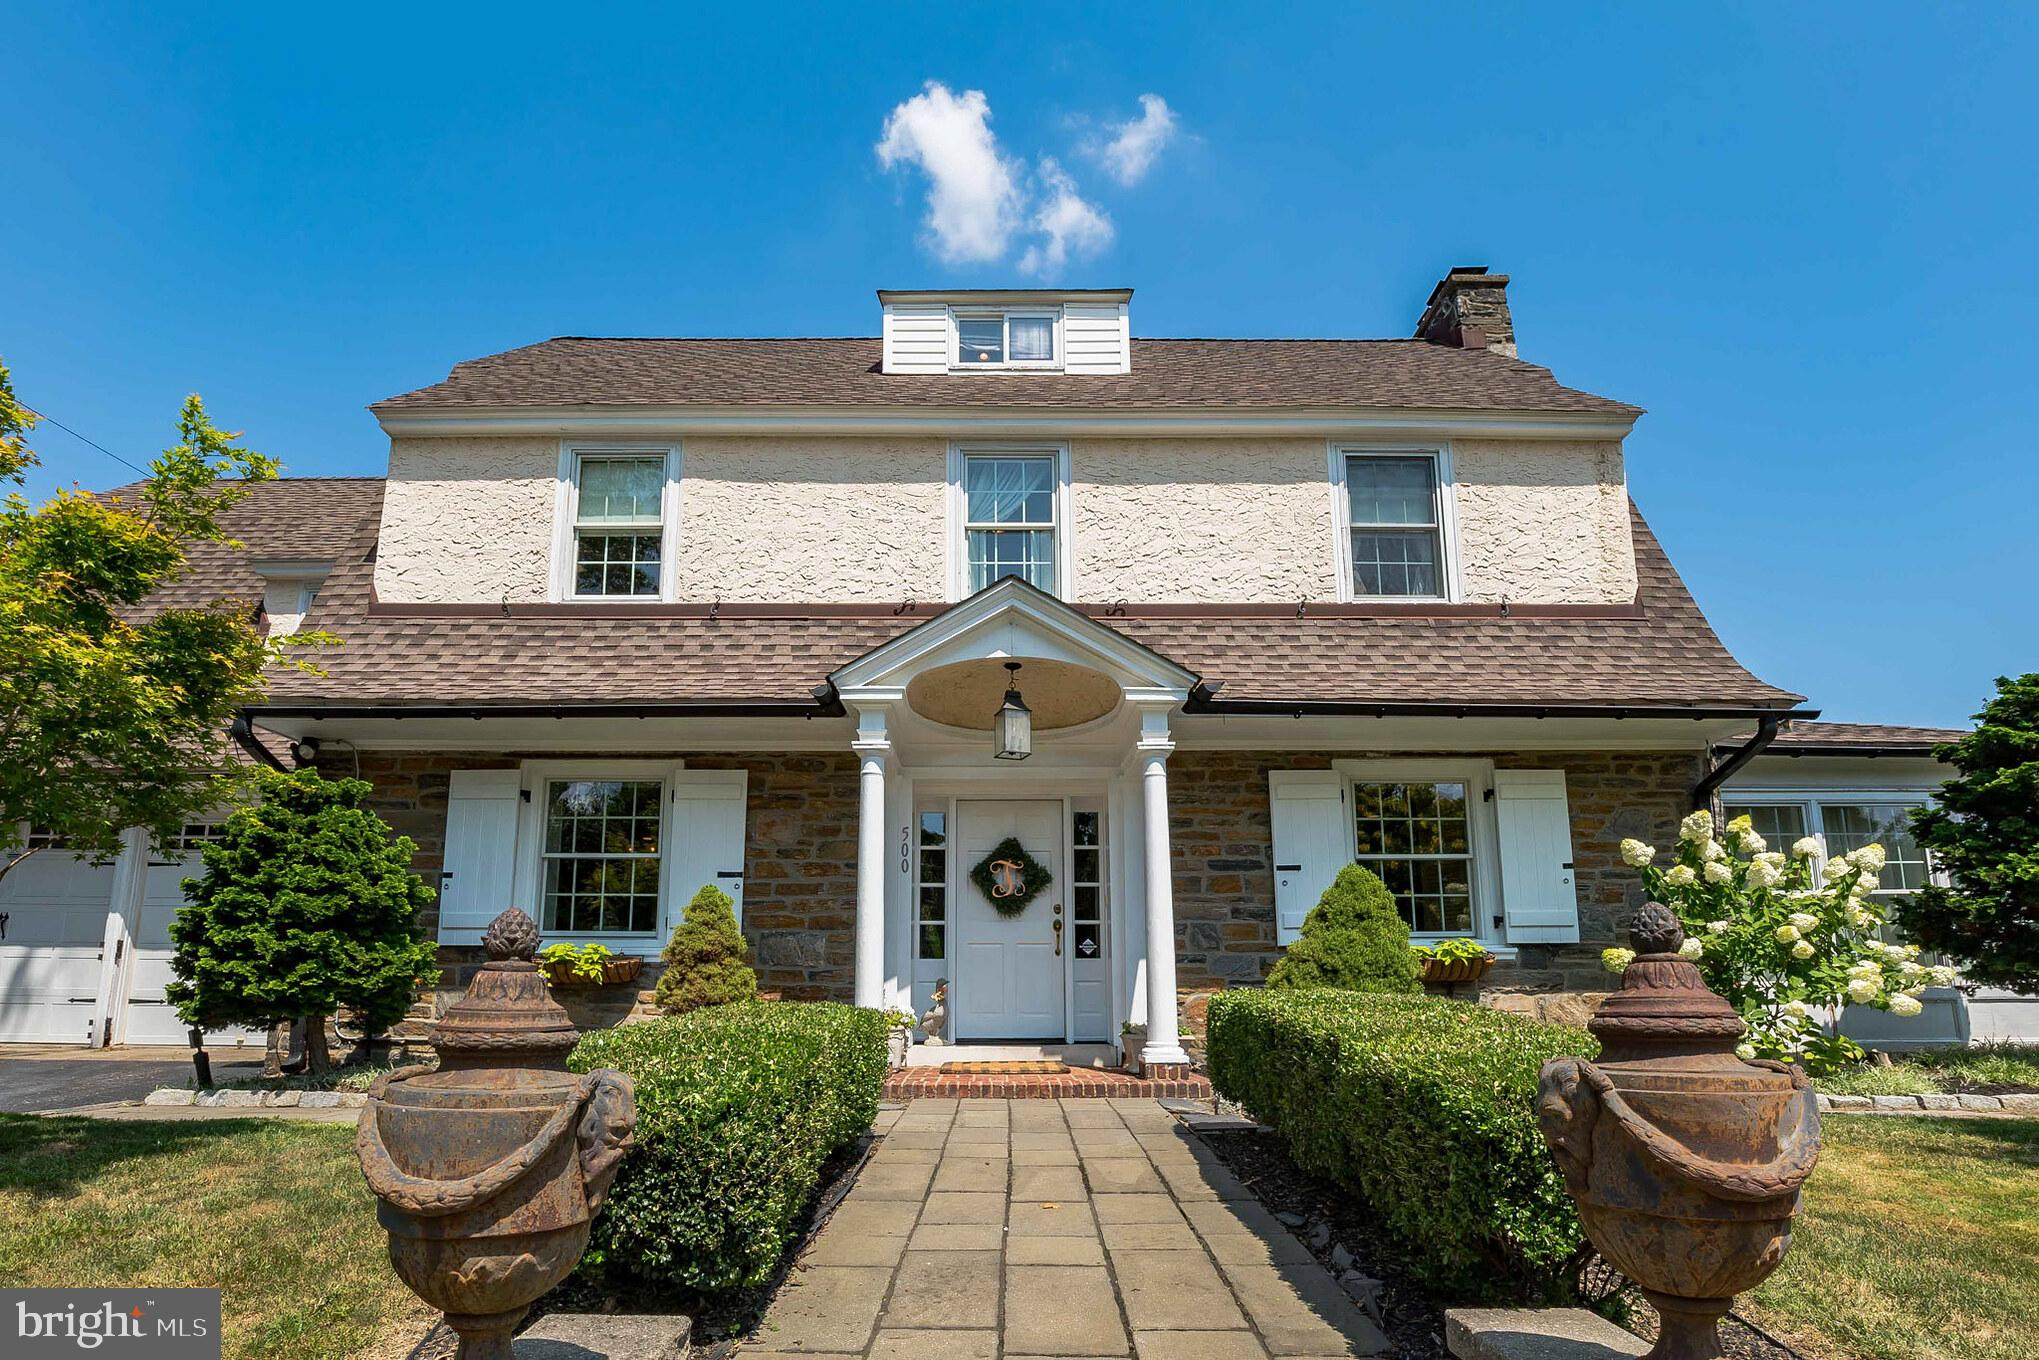 500 BROOKFIELD ROAD, DREXEL HILL, PA 19026